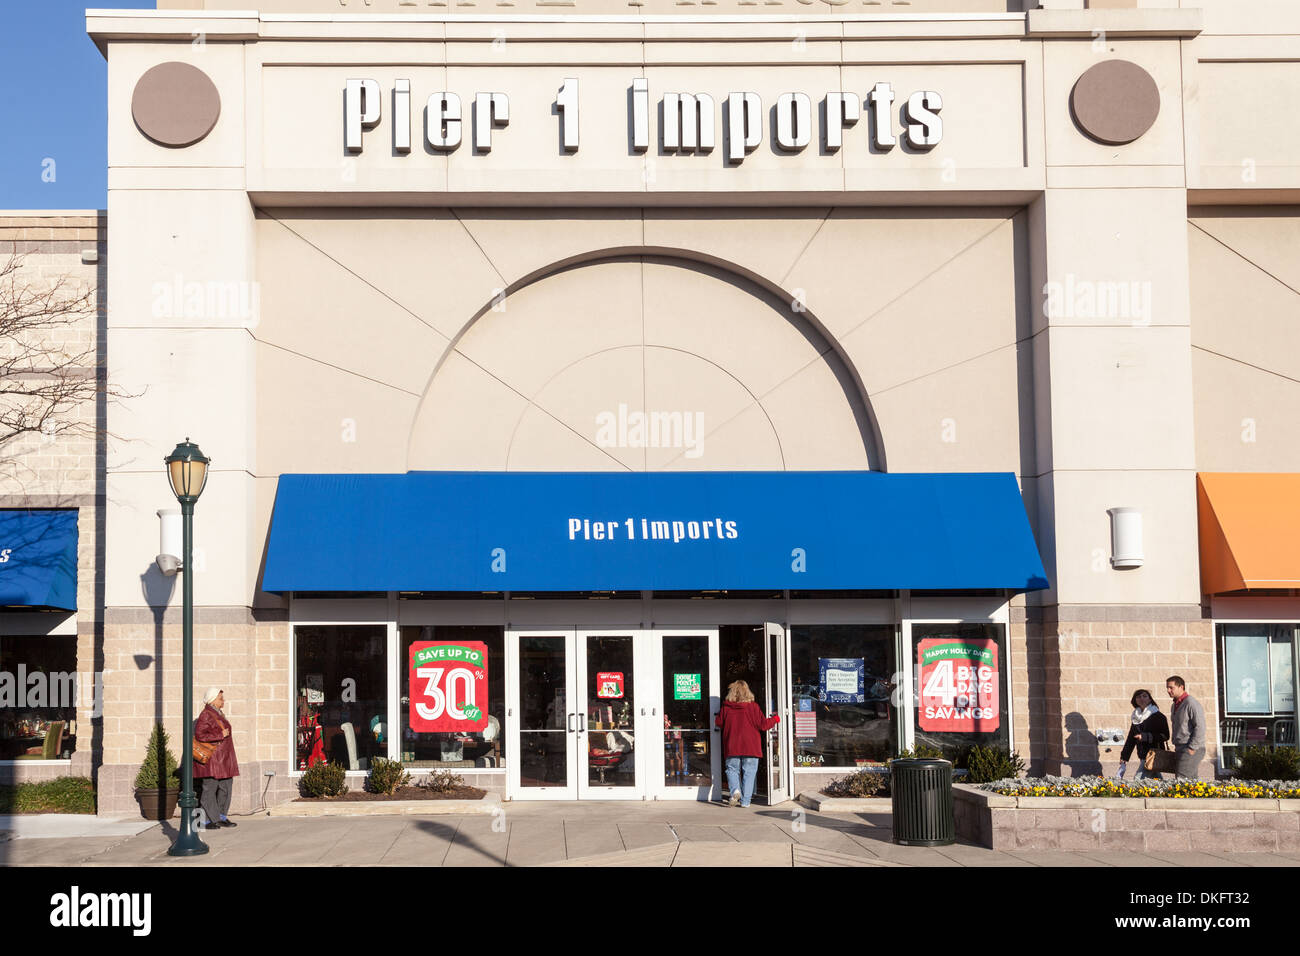 Pier 1 Imports box store, White Marsh, Maryland, Baltimore County. - Stock Image